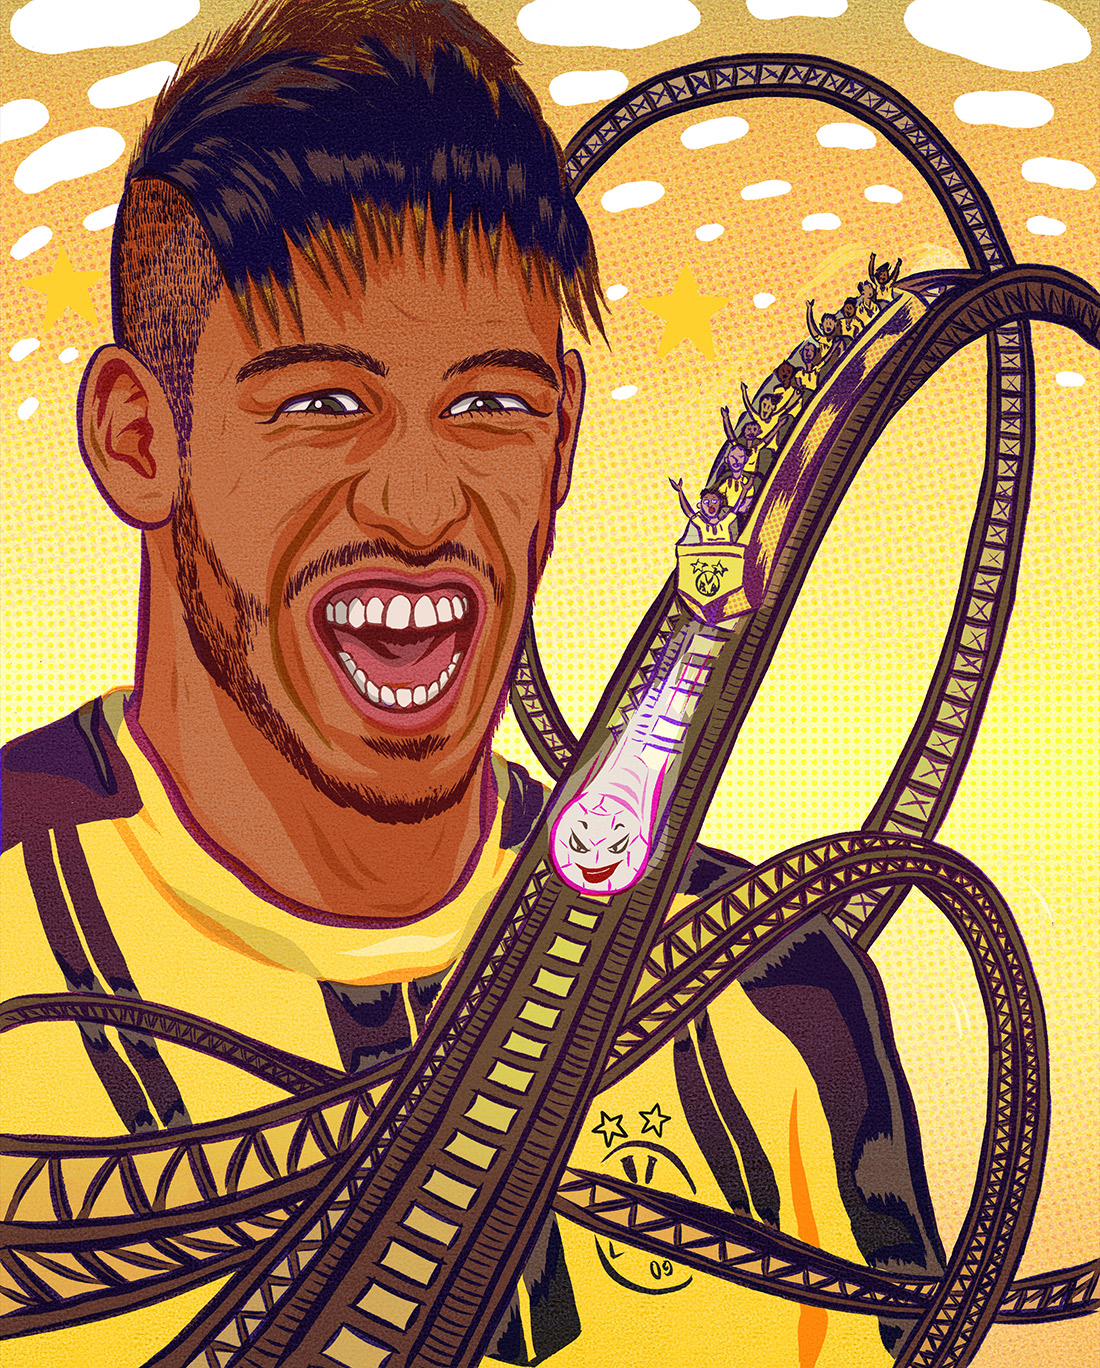 For 8x8 magazine's issue #09 about Pierre Emerick Aubameyang , a football player who plays for Borussia Dortmund in Germany.